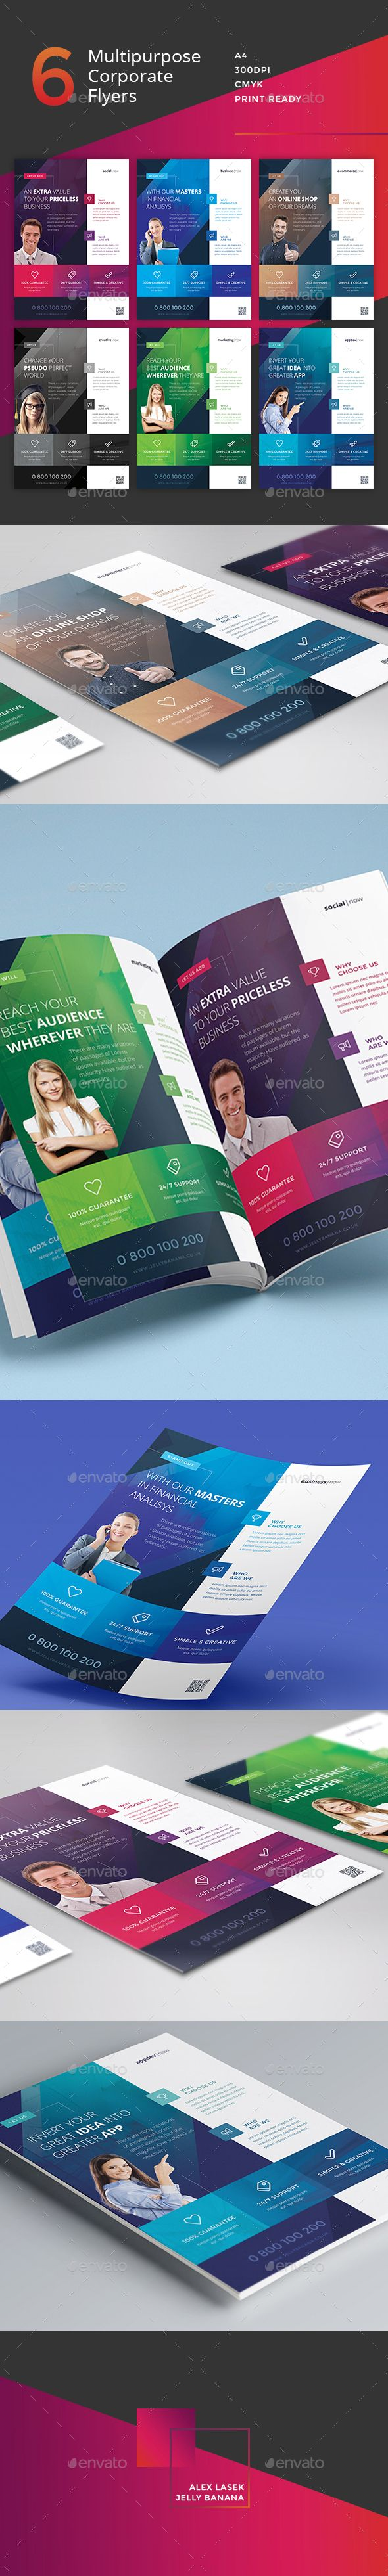 Corporate Flyer - 6 Multipurpose Business Template PSD #design Download…